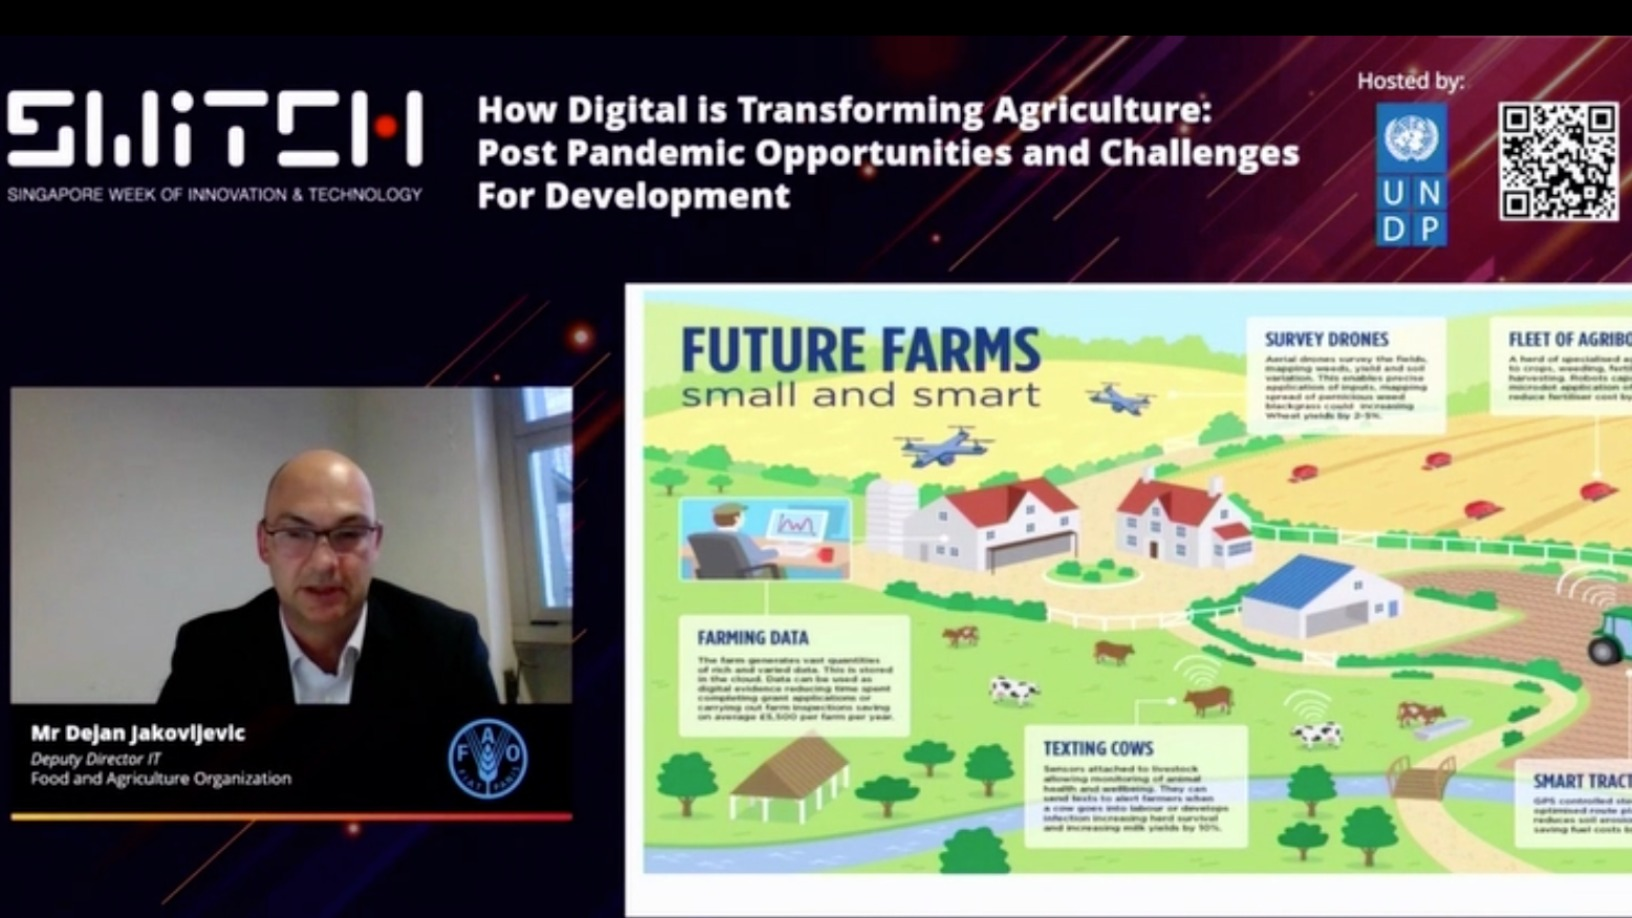 SWITCH Singapore: Race in agrifood tech as a solution to feeding 10bn people